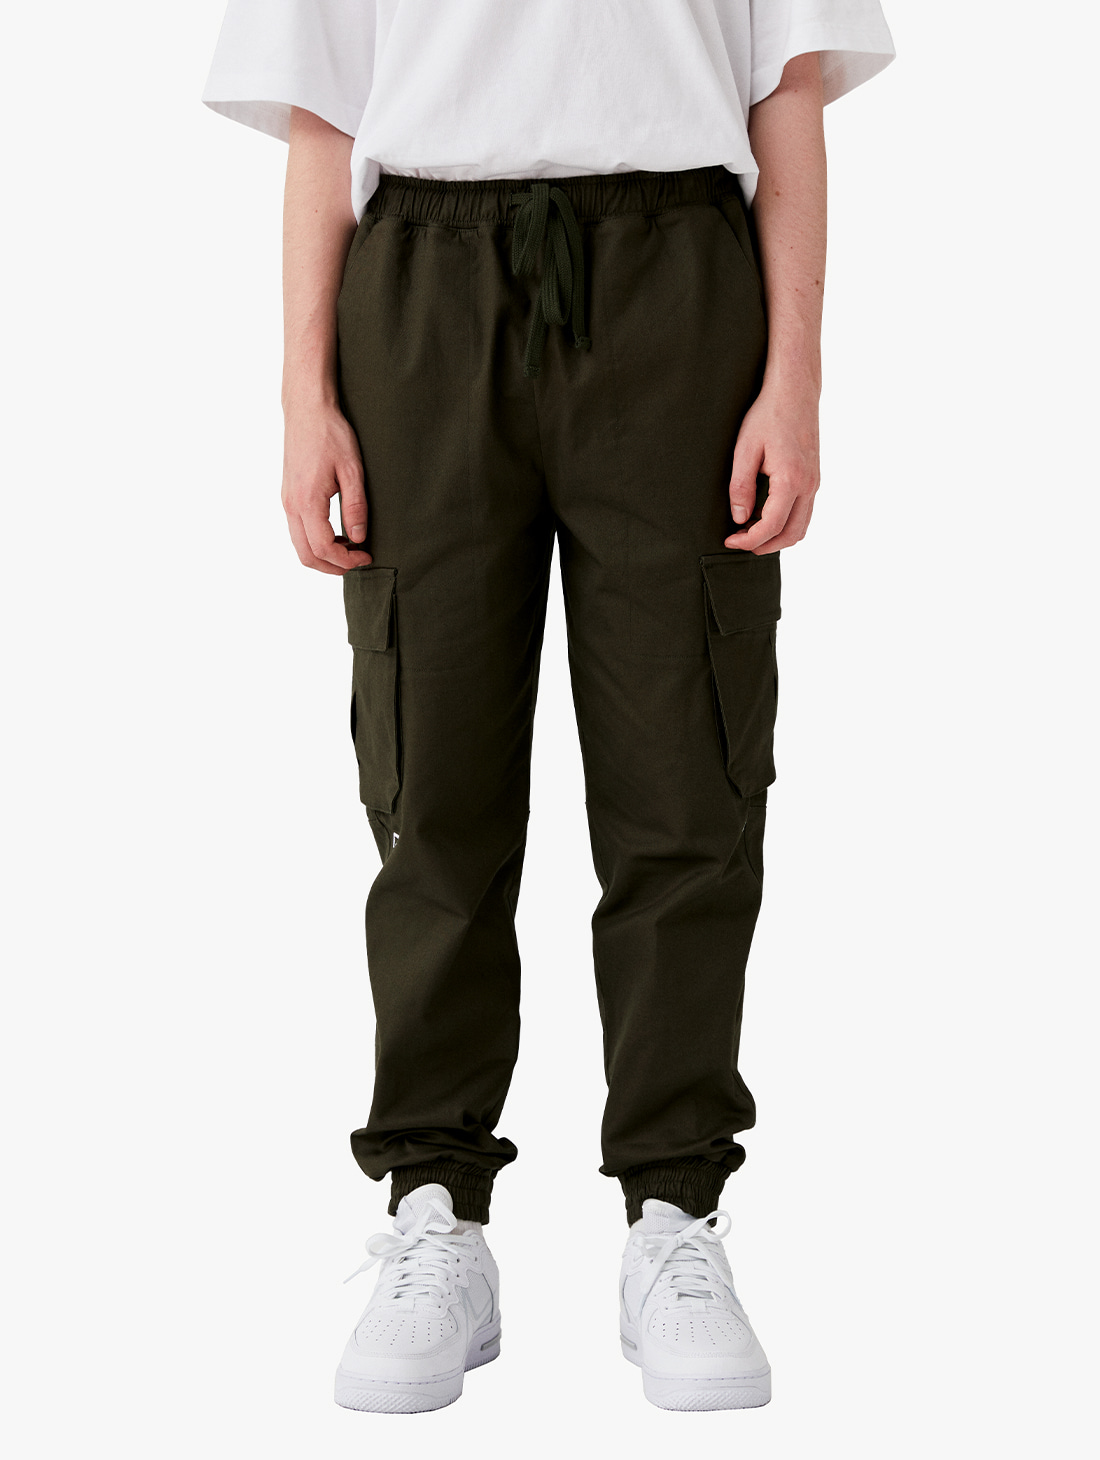 SIGNATURE WOVEN JOGGER PANTS (2 Colors)